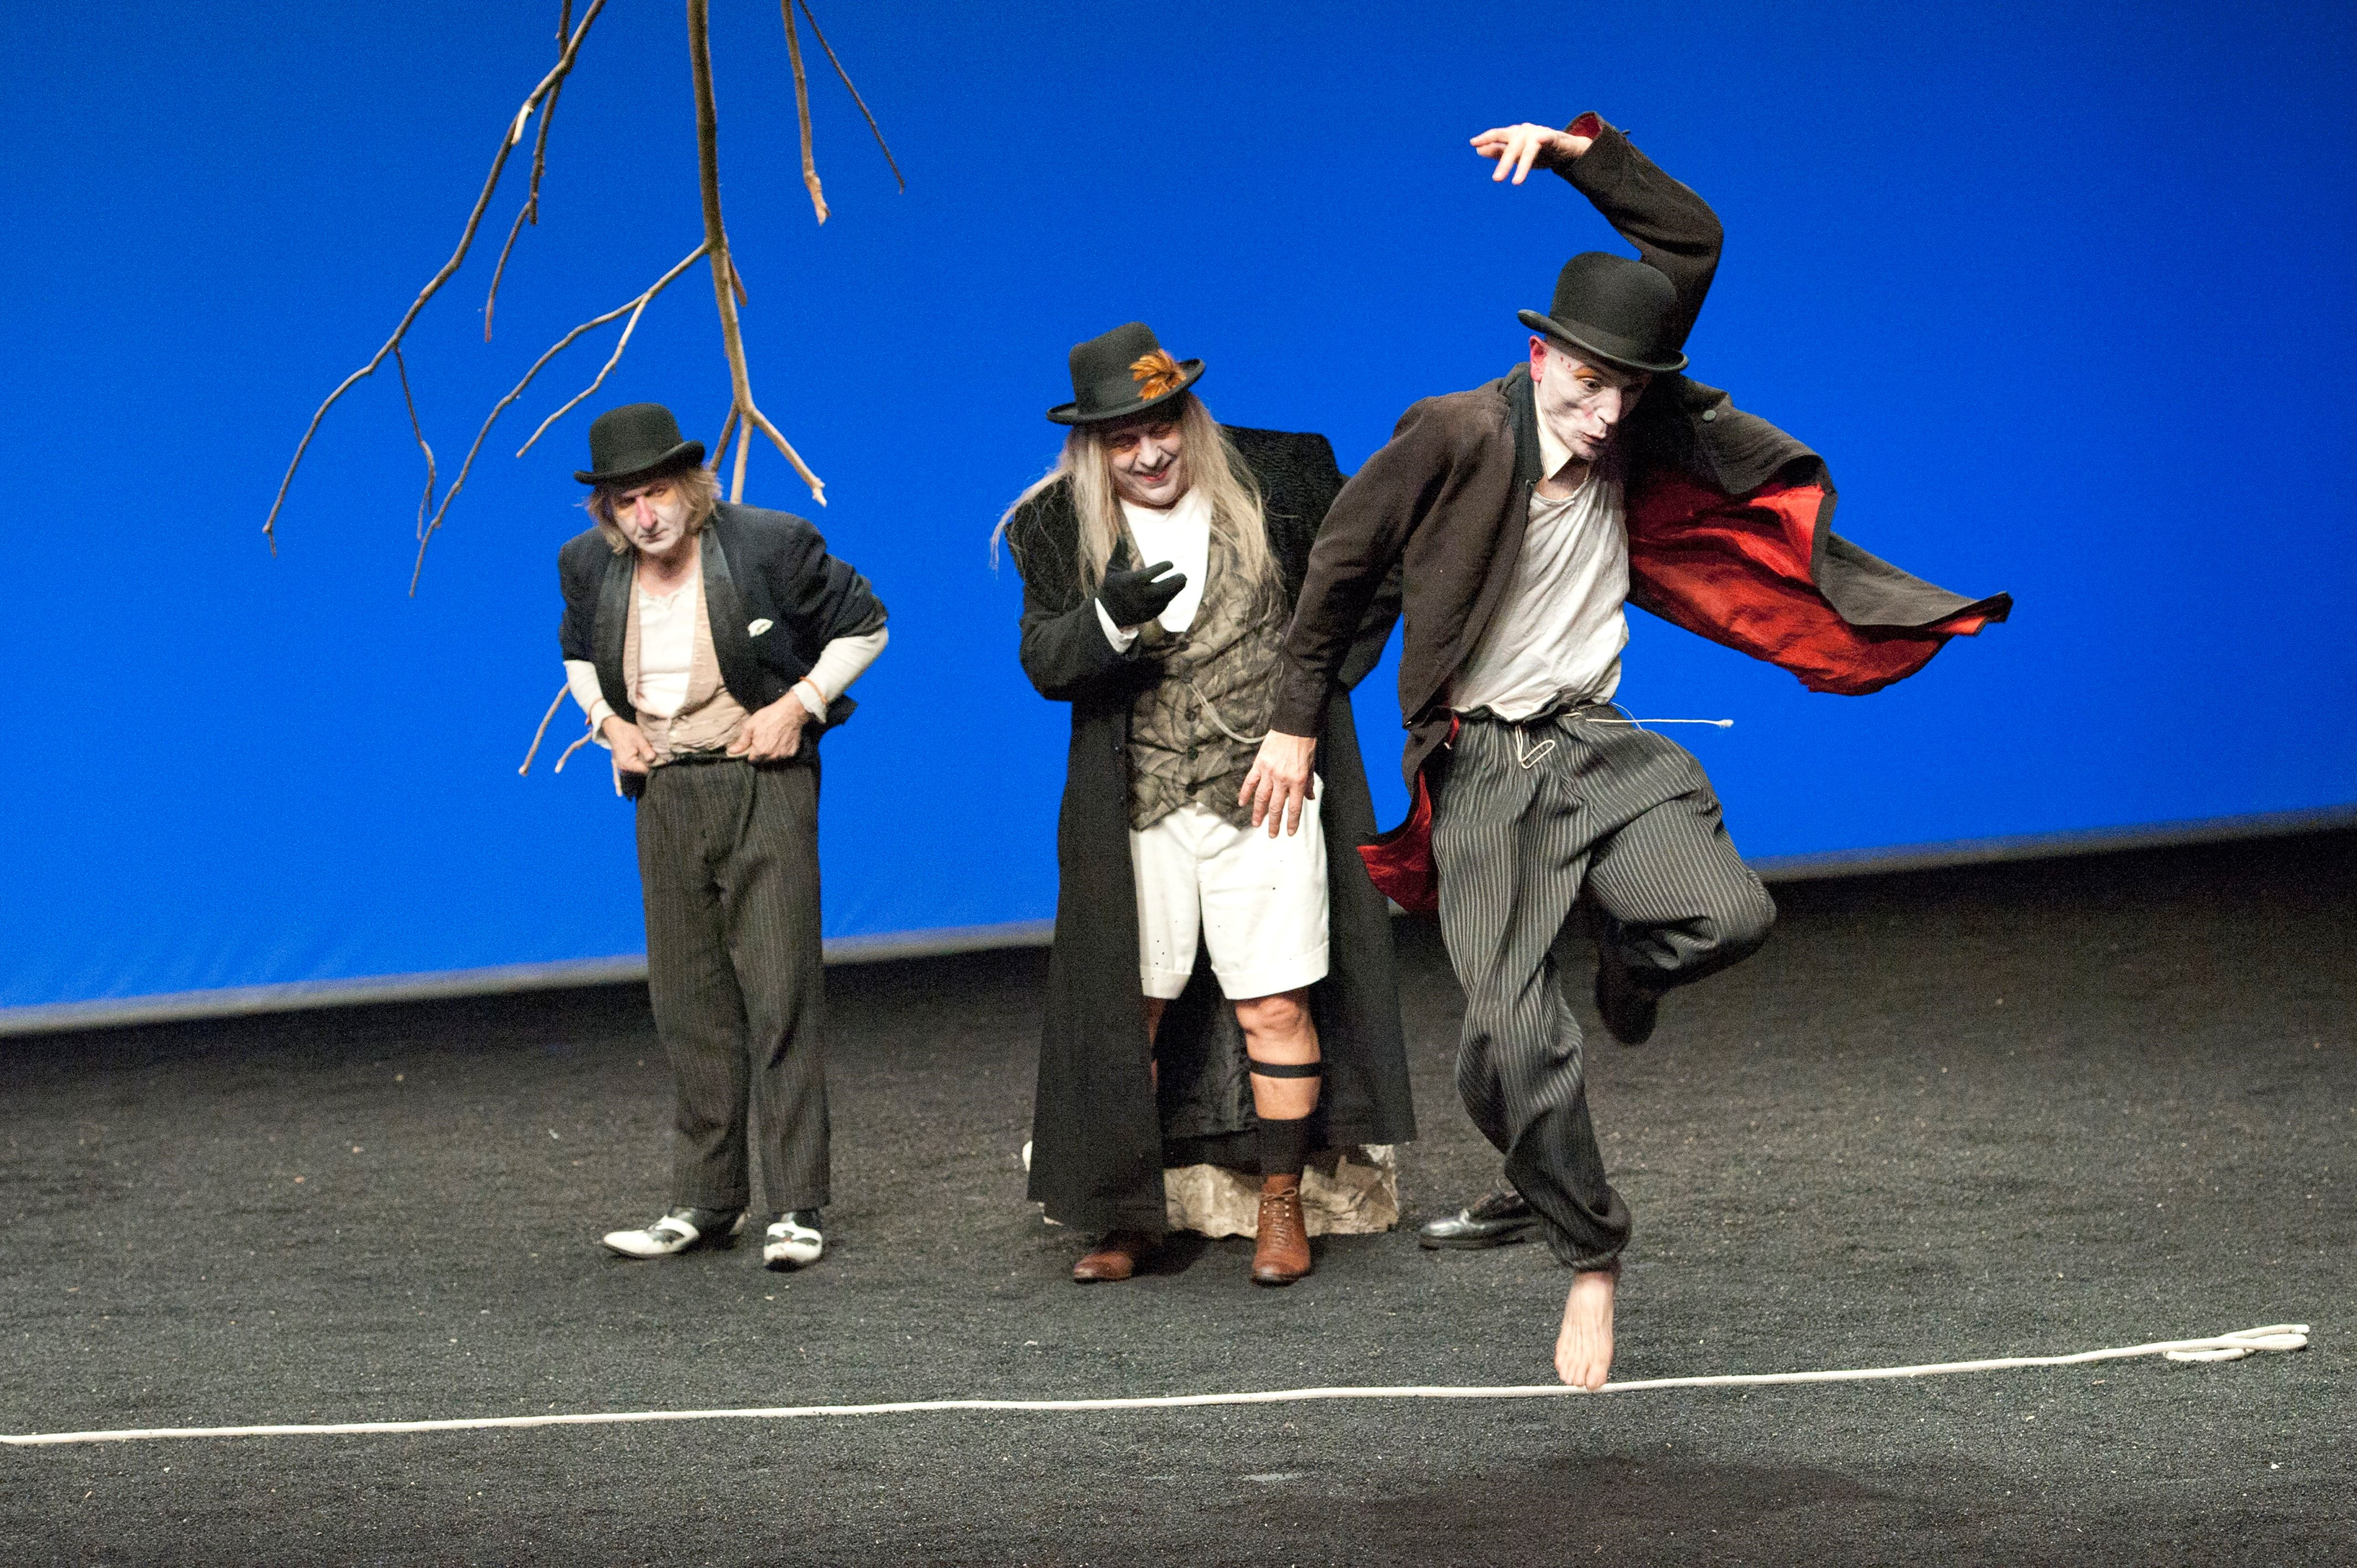 "<a href=""http://europeanstages.org/2014/11/07/happy-days-enn…y-31-august-11/"">Happy Days: Enniskillen International Beckett Festival 2014, July 31-August 11</a>"